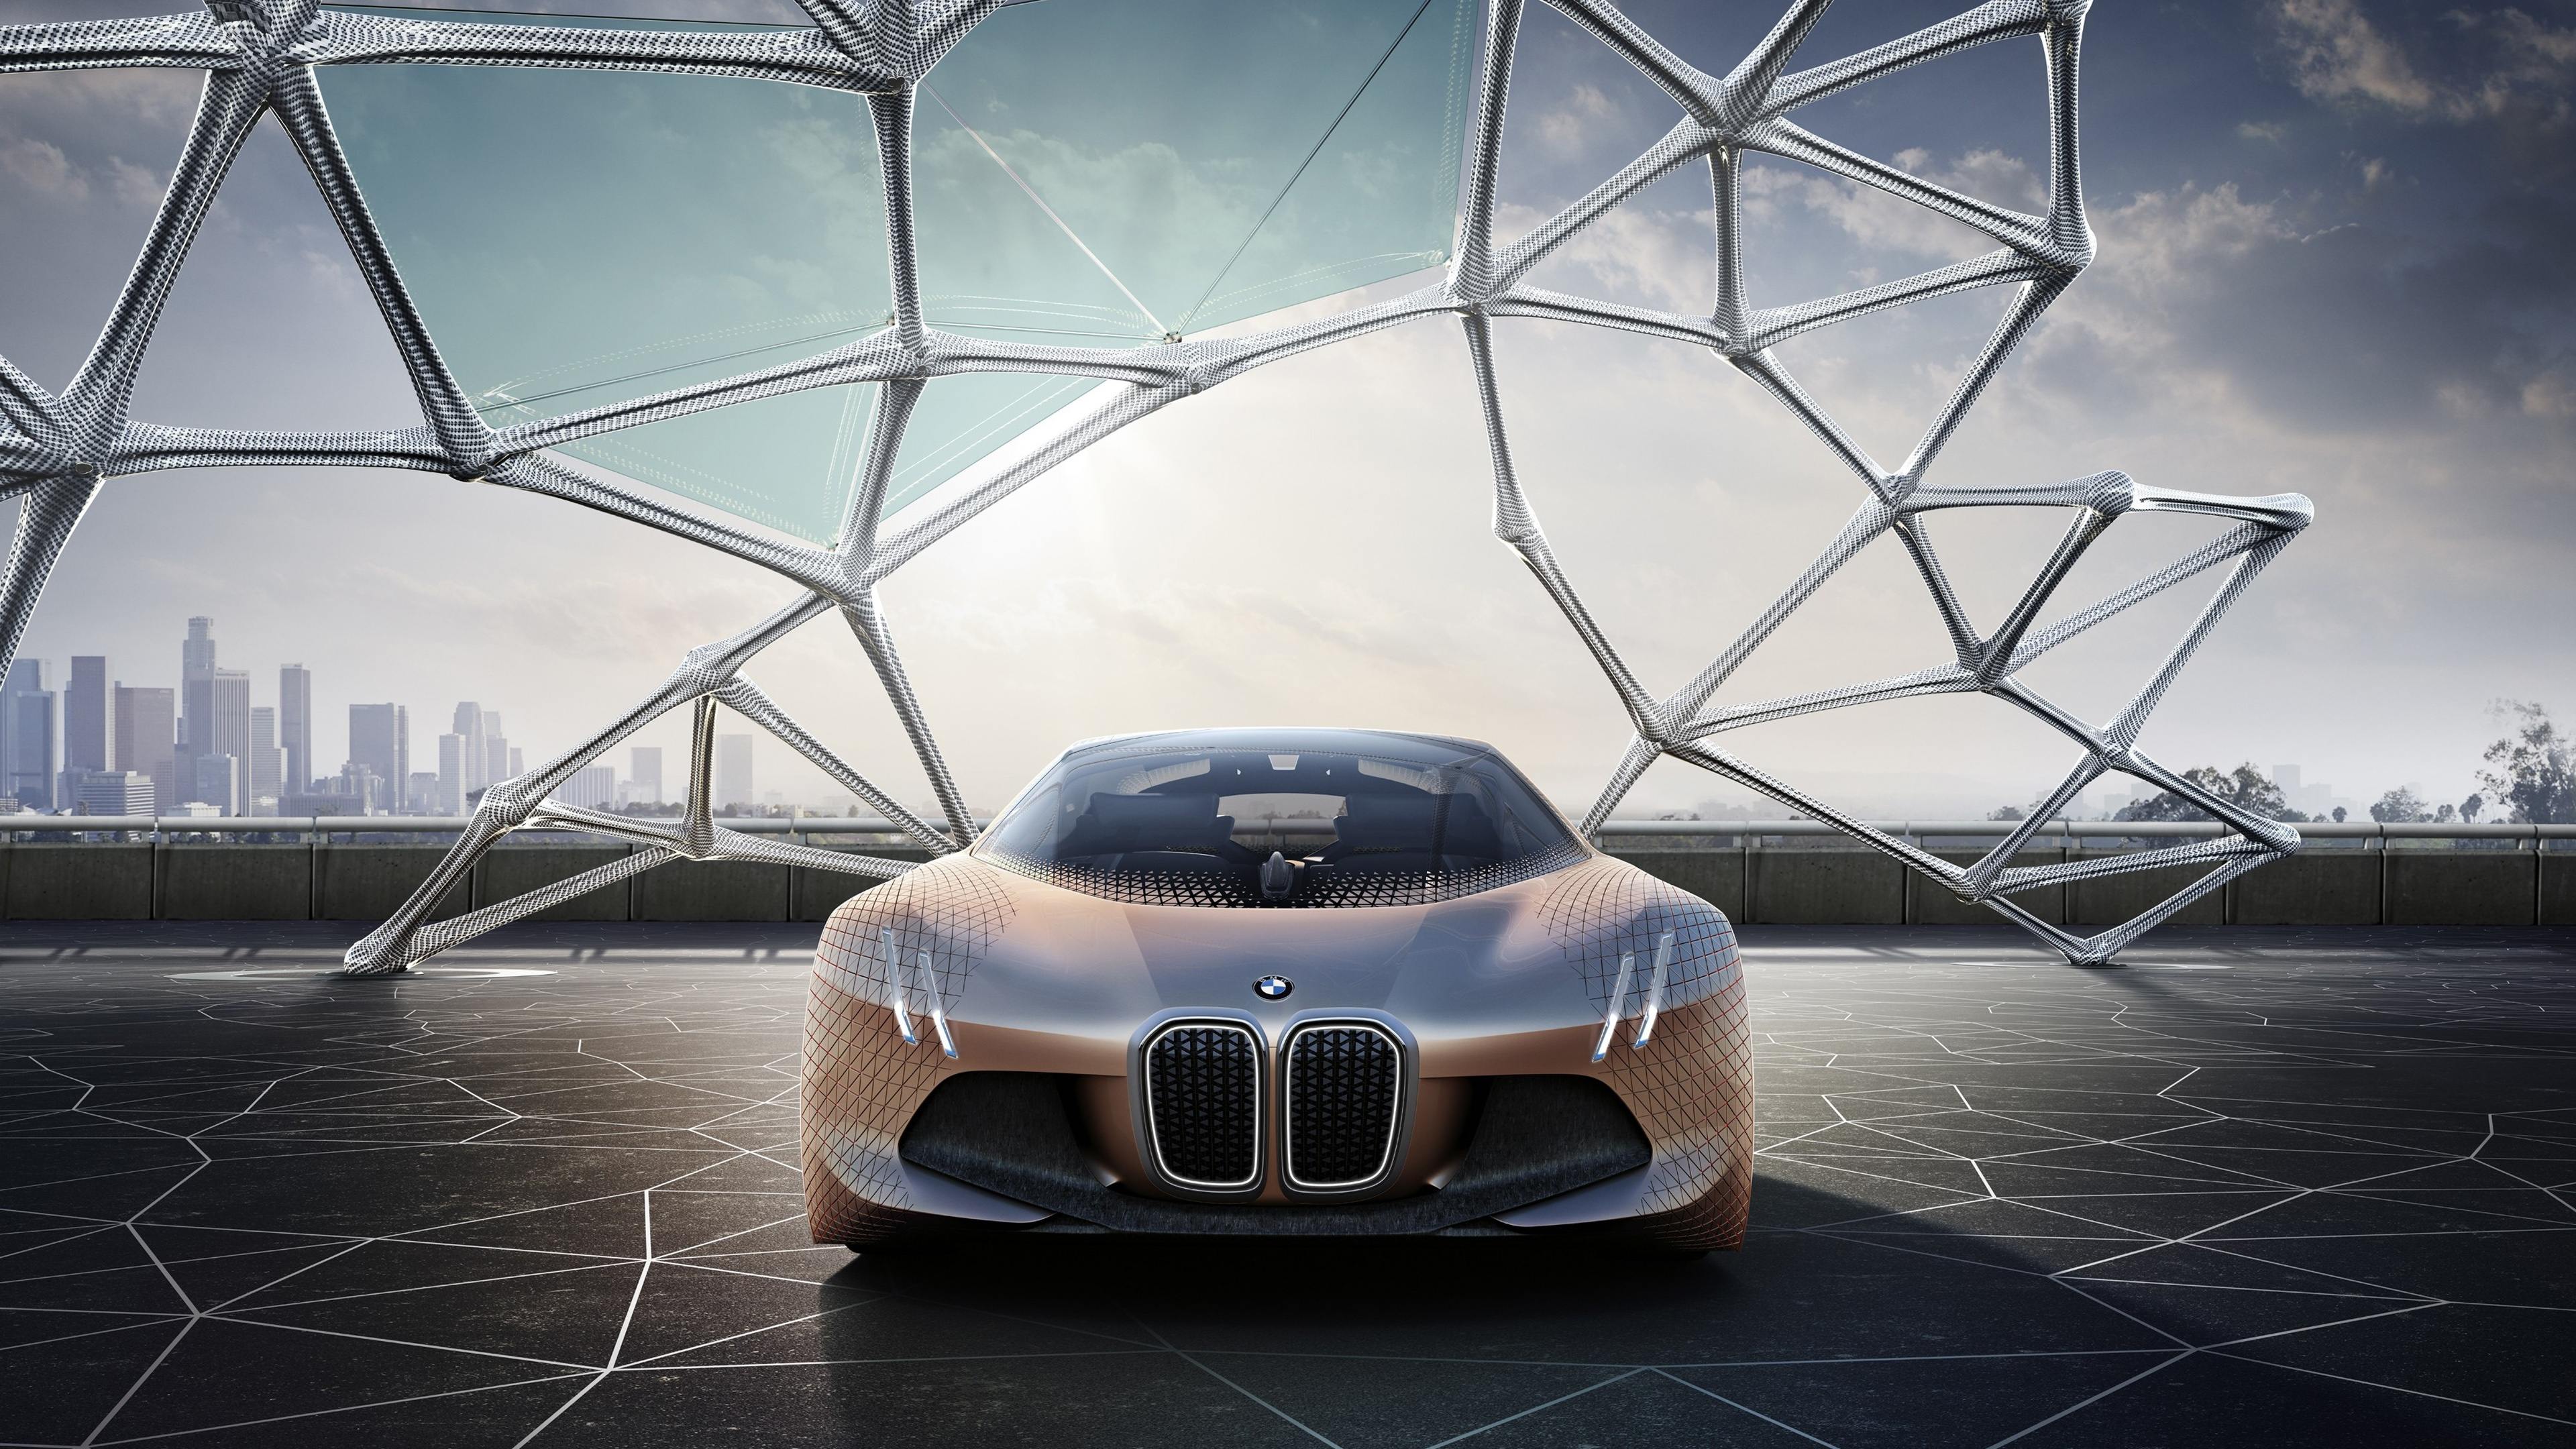 BMW Vision Next 100 Concept 4K Wallpapers